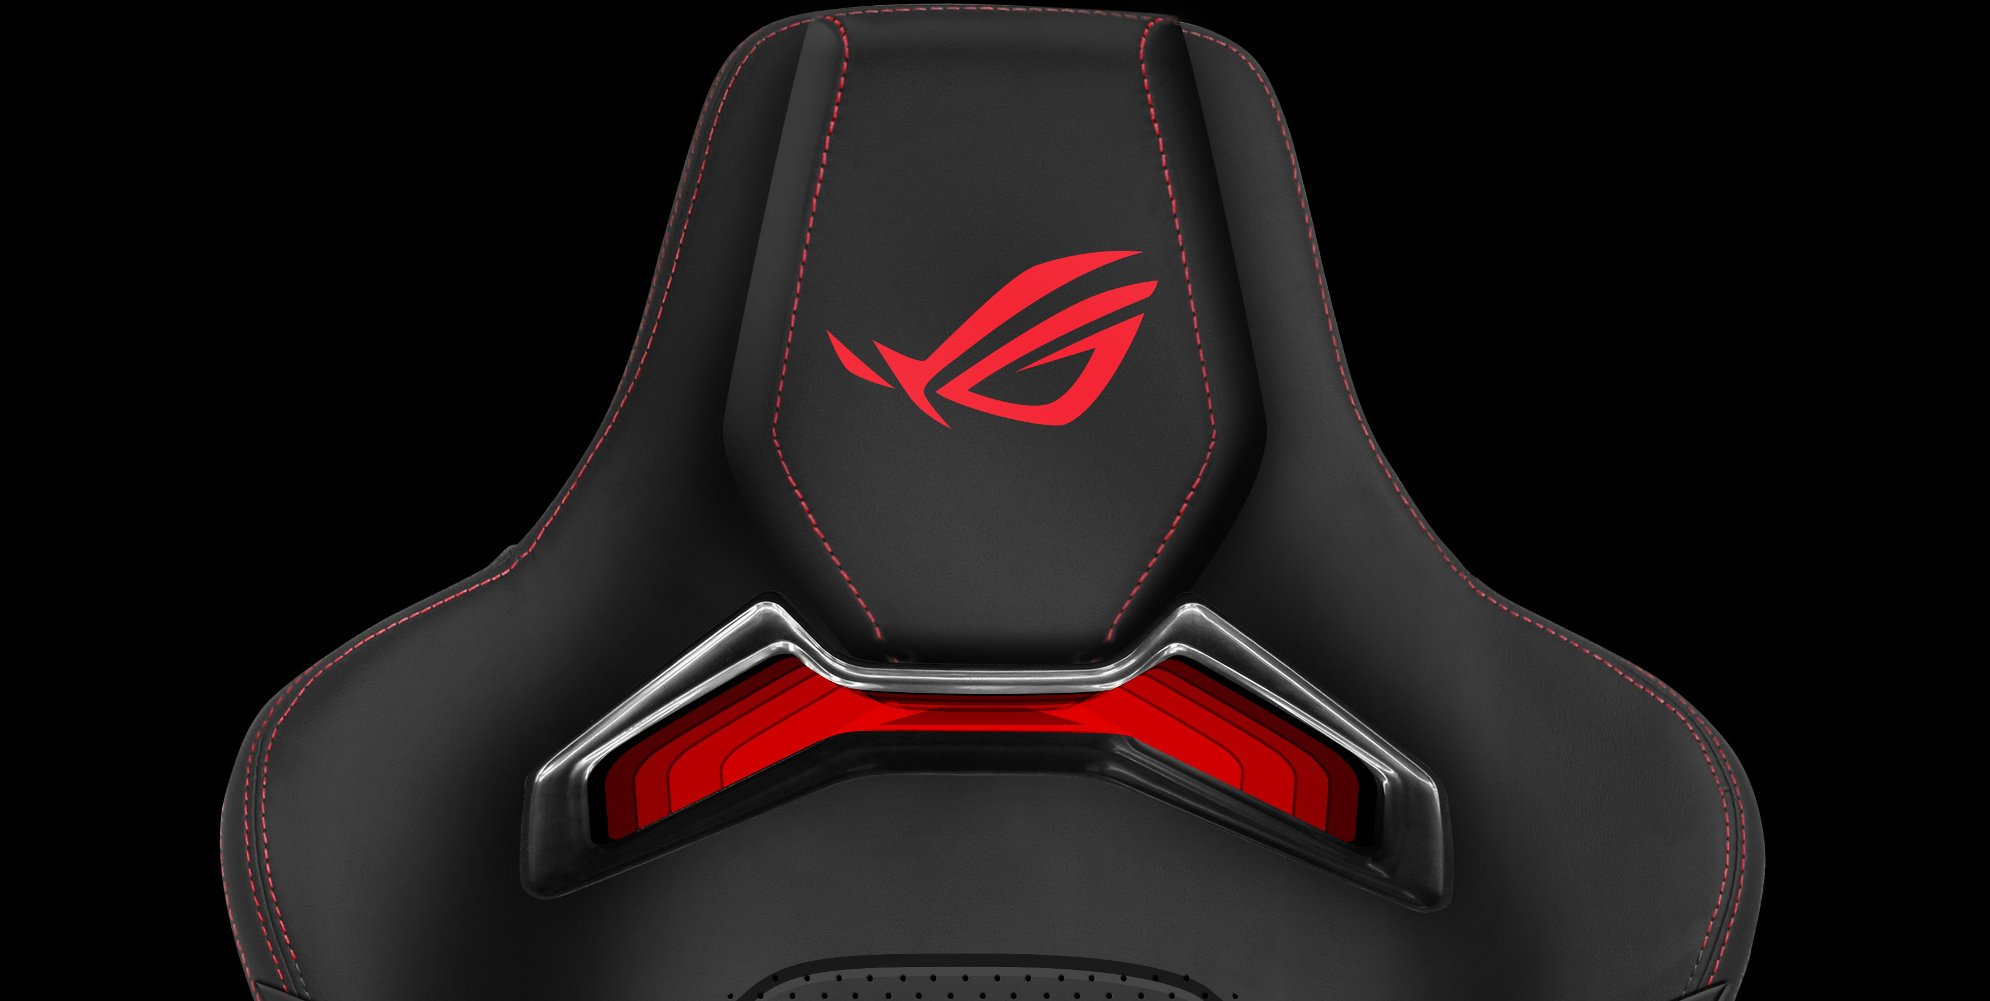 Terrific The Rog Chariot Gaming Chair Is Decked Out In Rgb Lighting Short Links Chair Design For Home Short Linksinfo